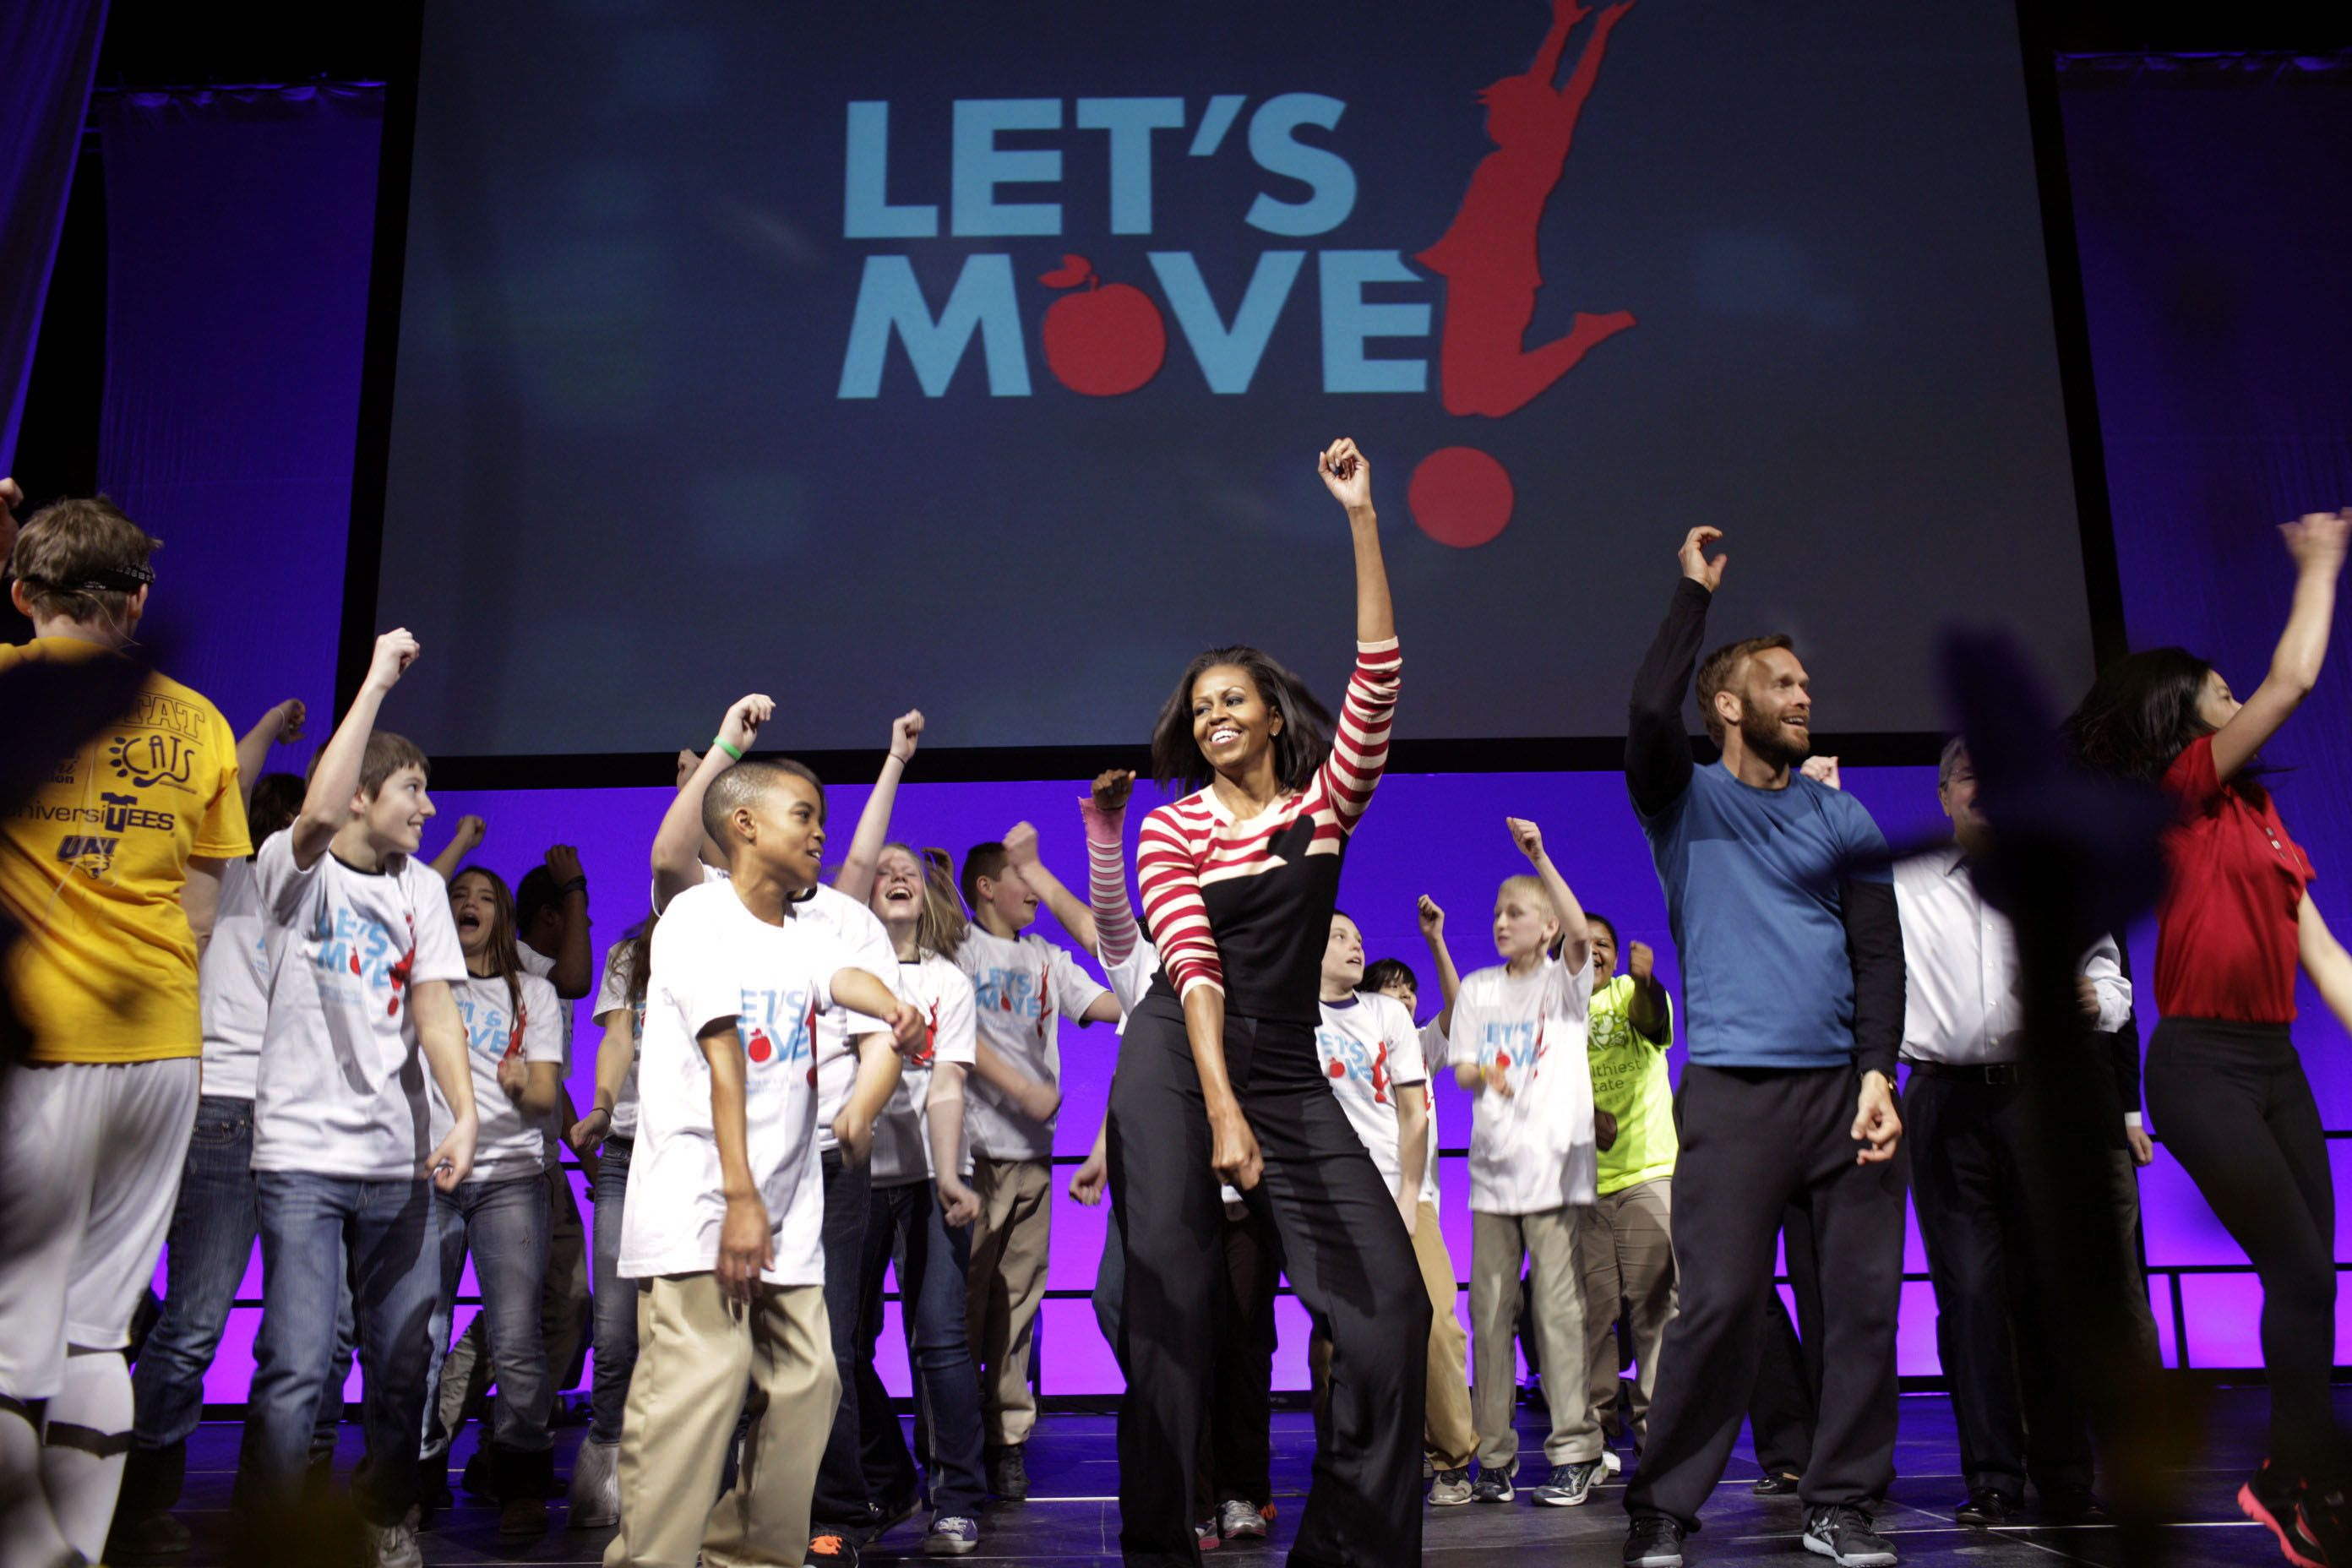 https://www.whitehouse.gov/blog/2012/02/09/first-lady-michelle-obama-road-lets-move